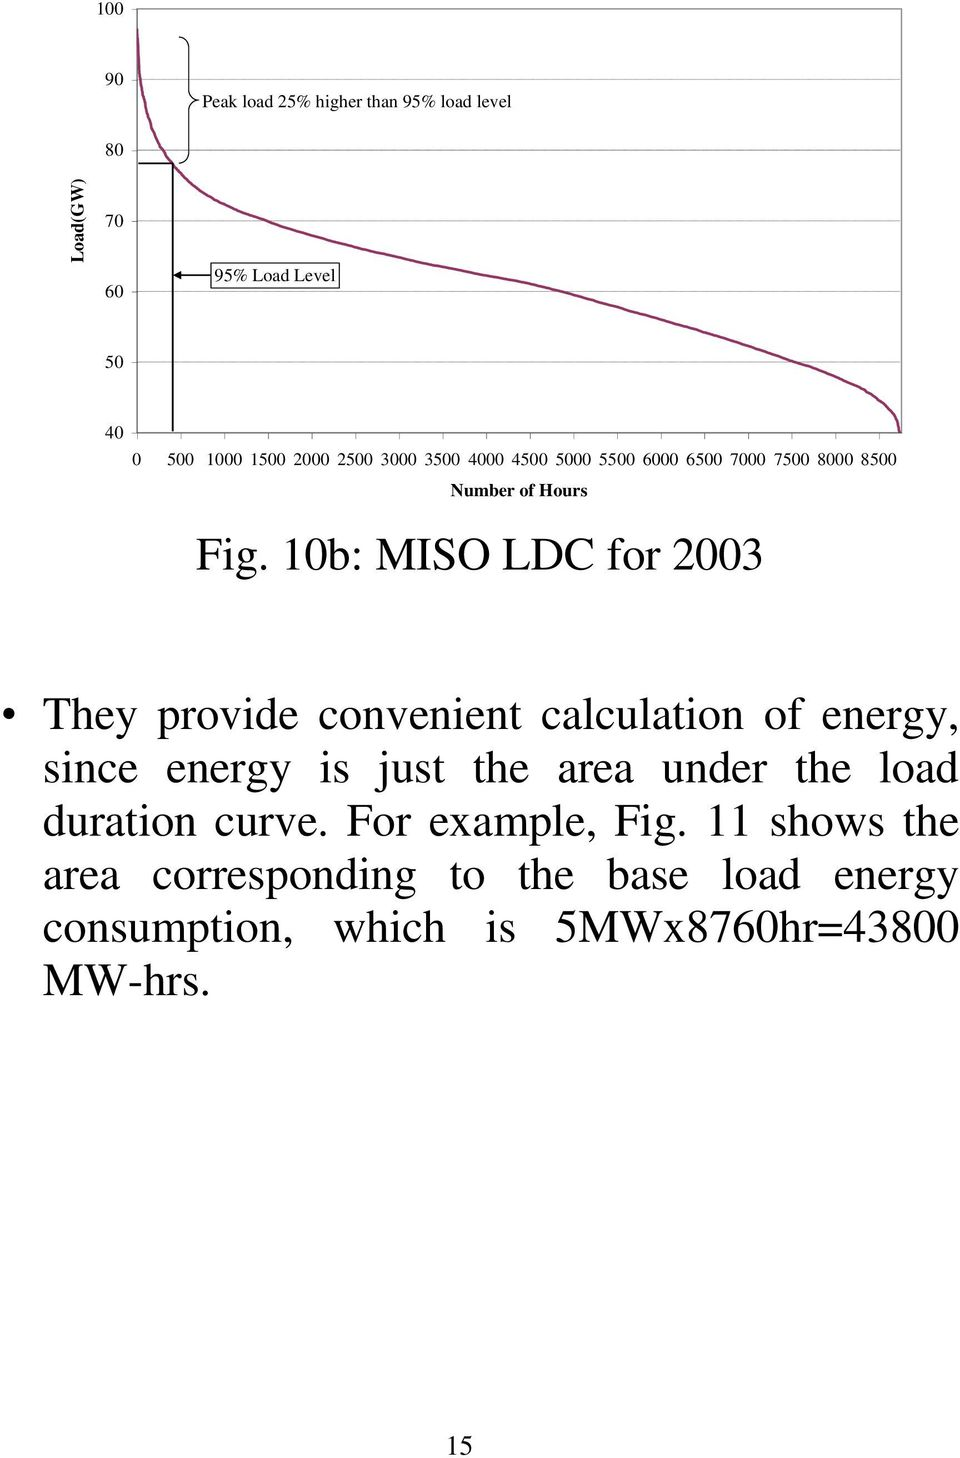 0b: MISO LC for 2003 Thy provid convnint calculation of nrgy, sinc nrgy is ust th ara undr th load